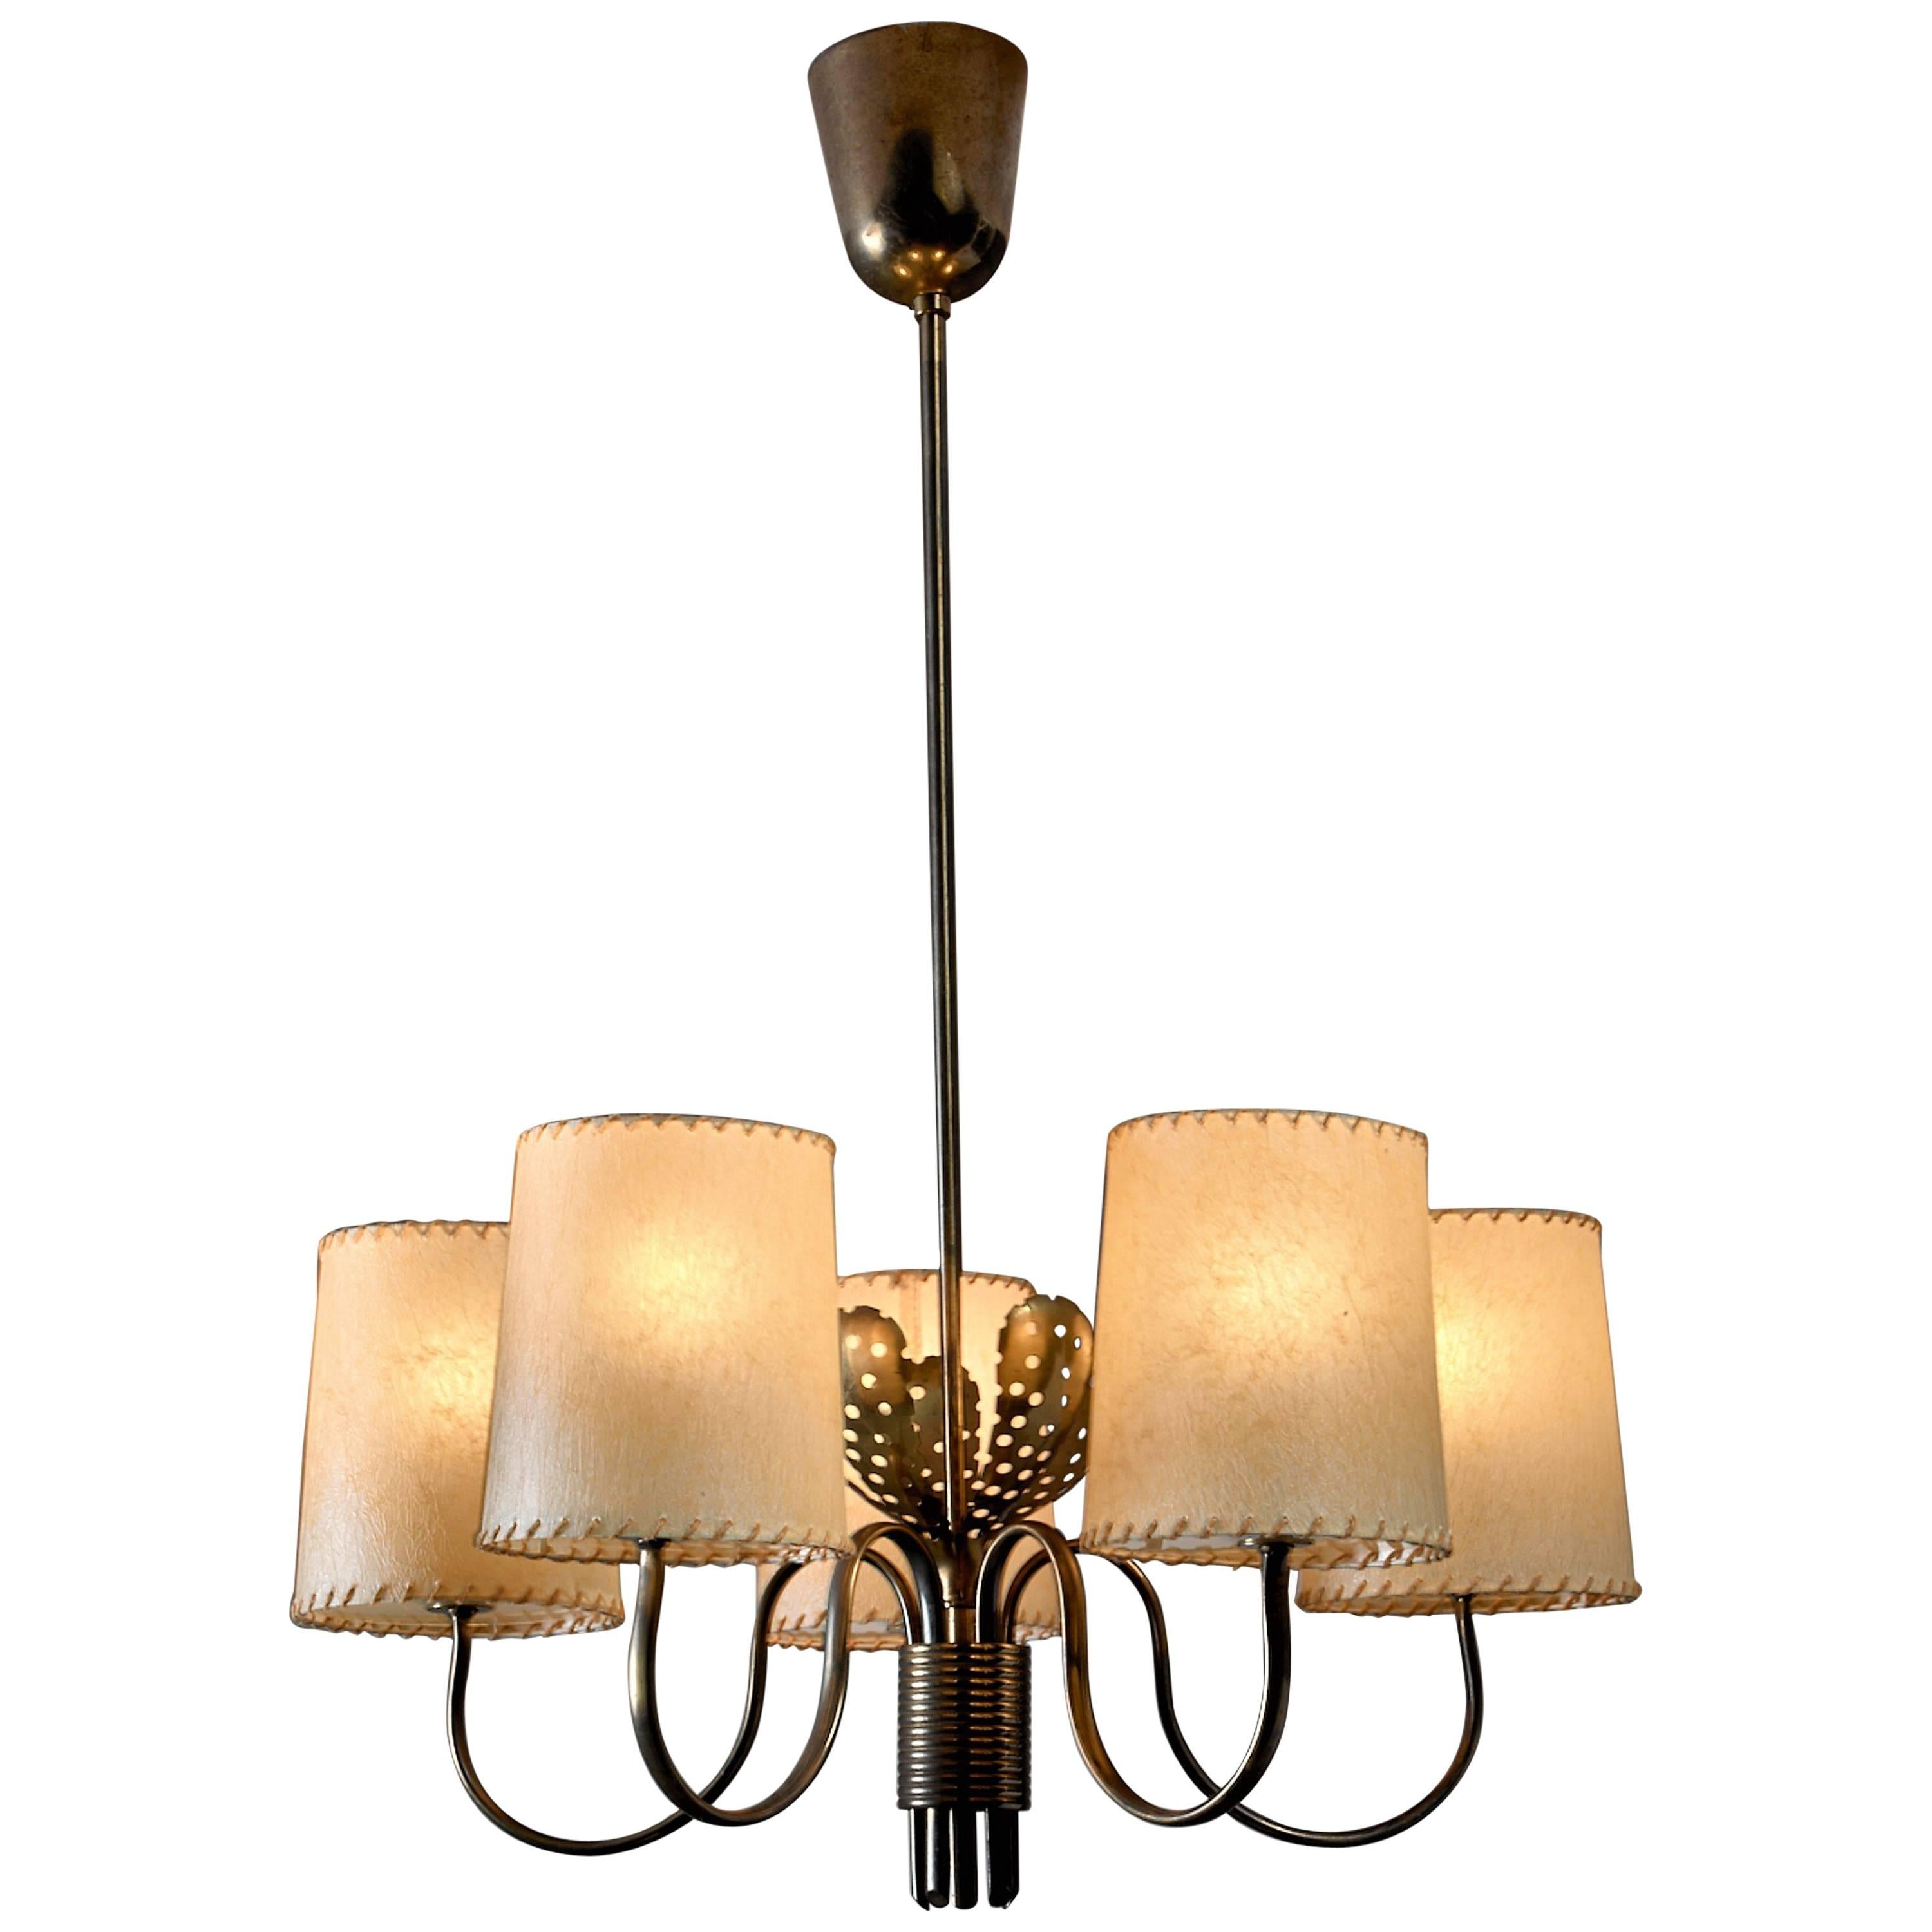 Paavo Tynell Five-Arm Chandelier with Brass Petals, Taito, Finland, 1950s